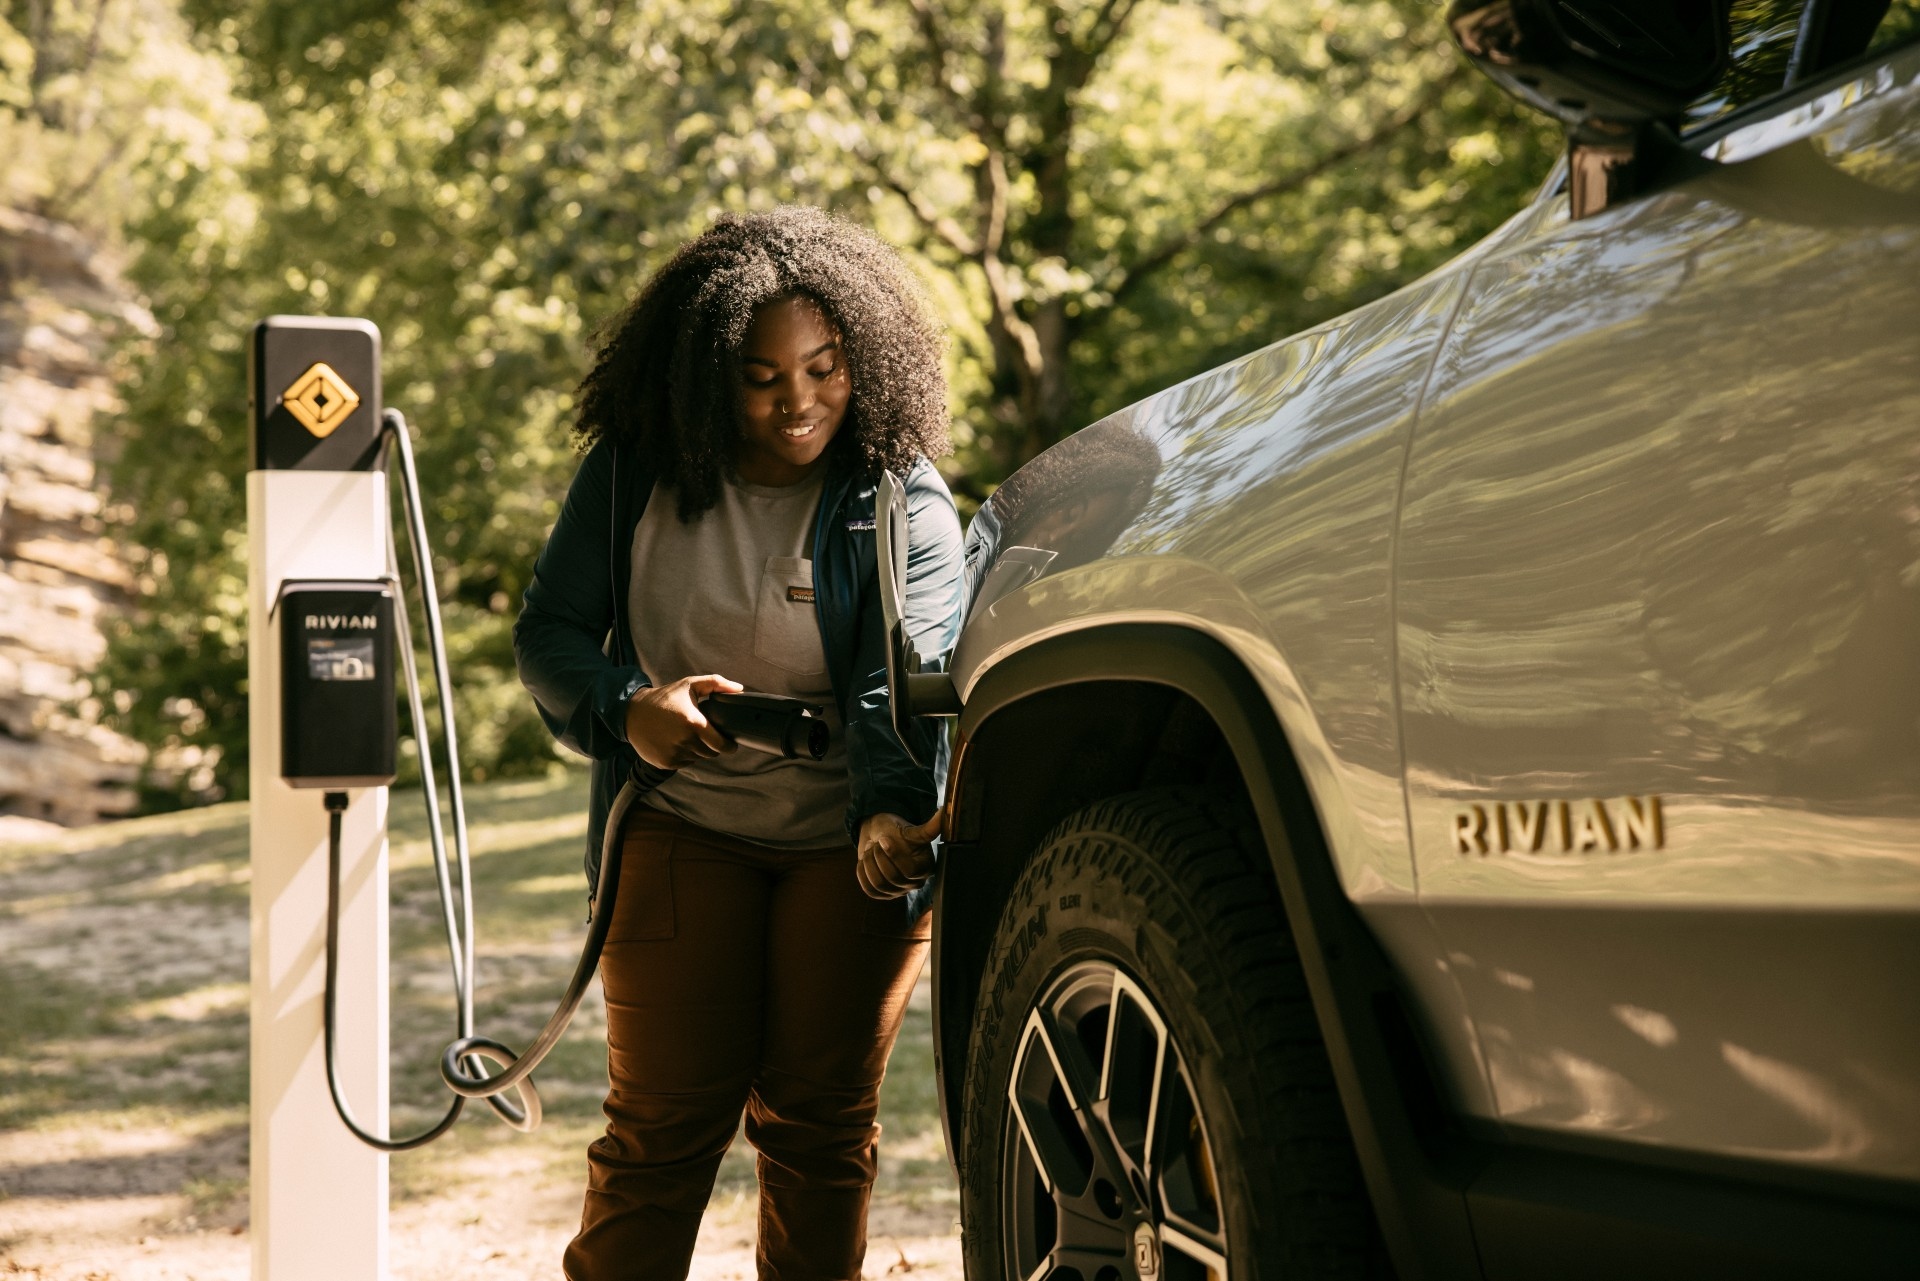 rivian-tdec-charging-tennessee-state-parks-2